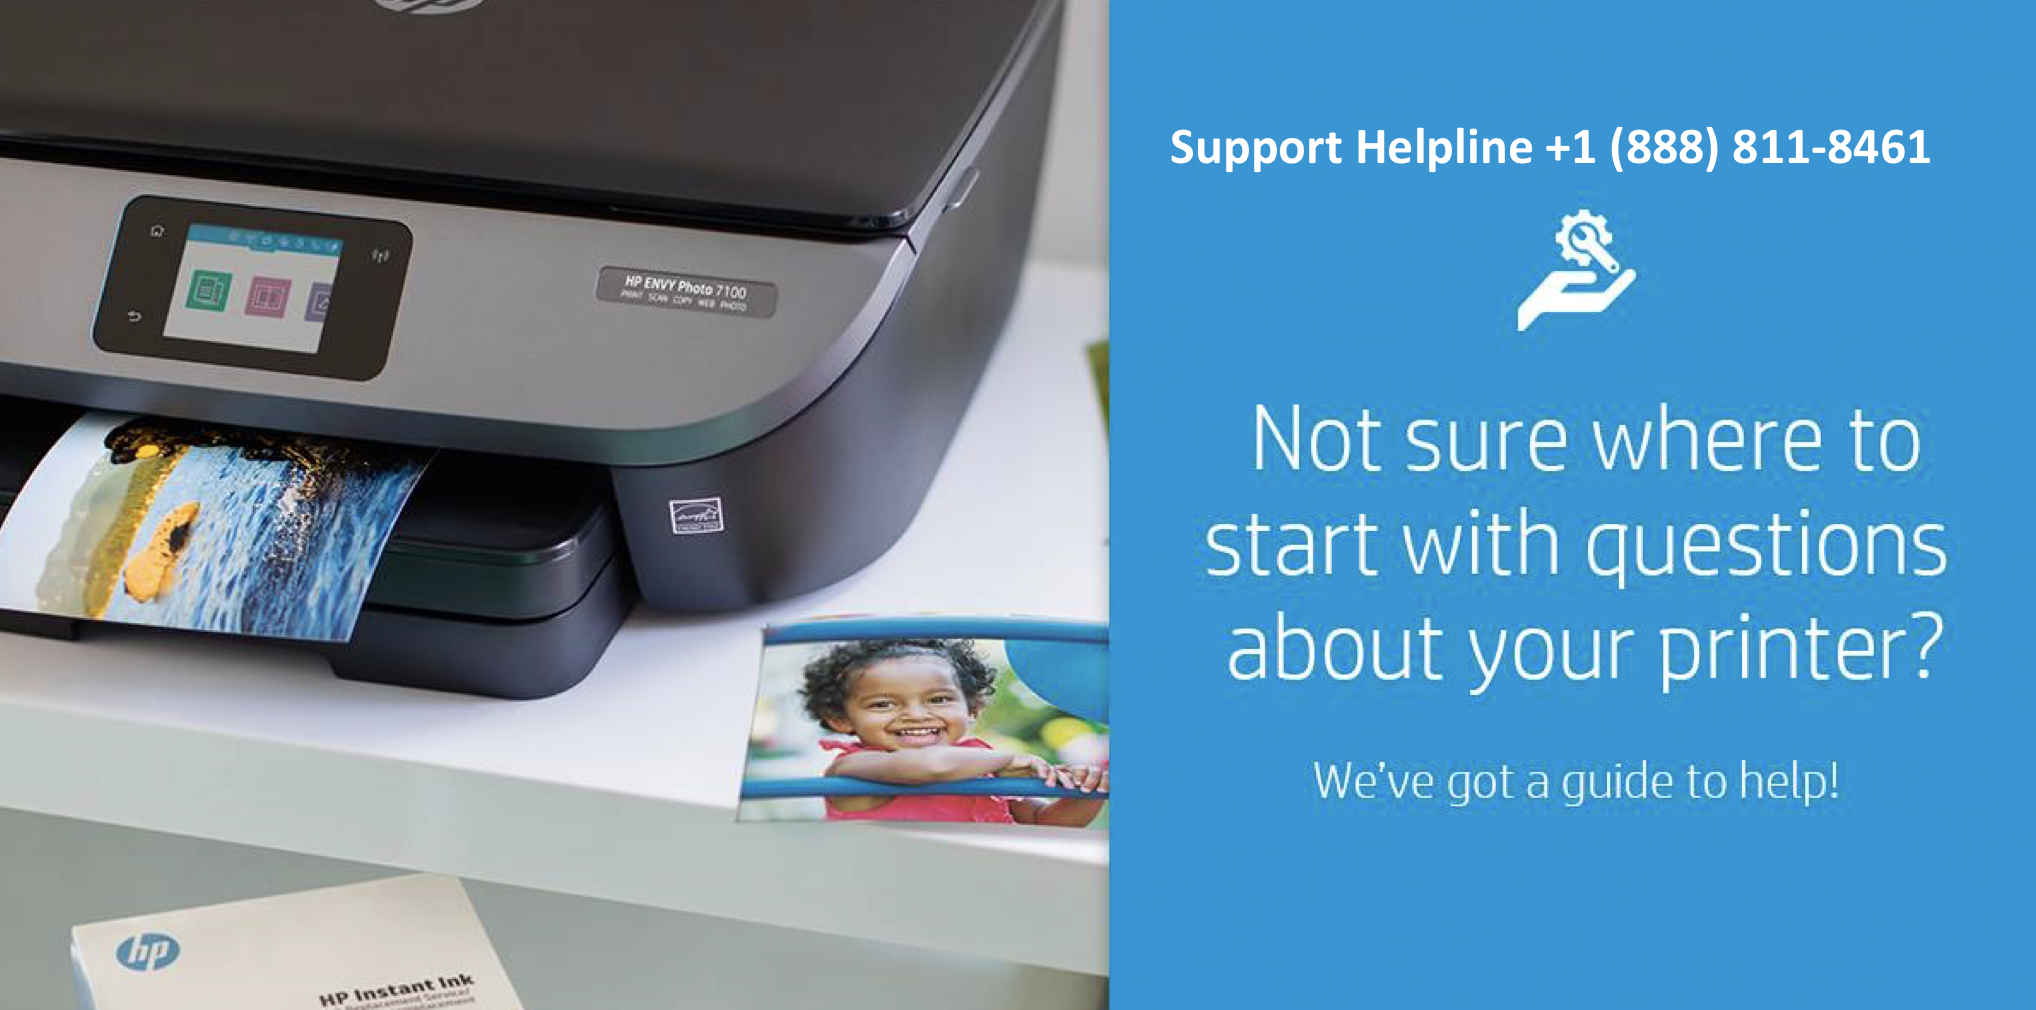 Hp Printer Support Number image 2